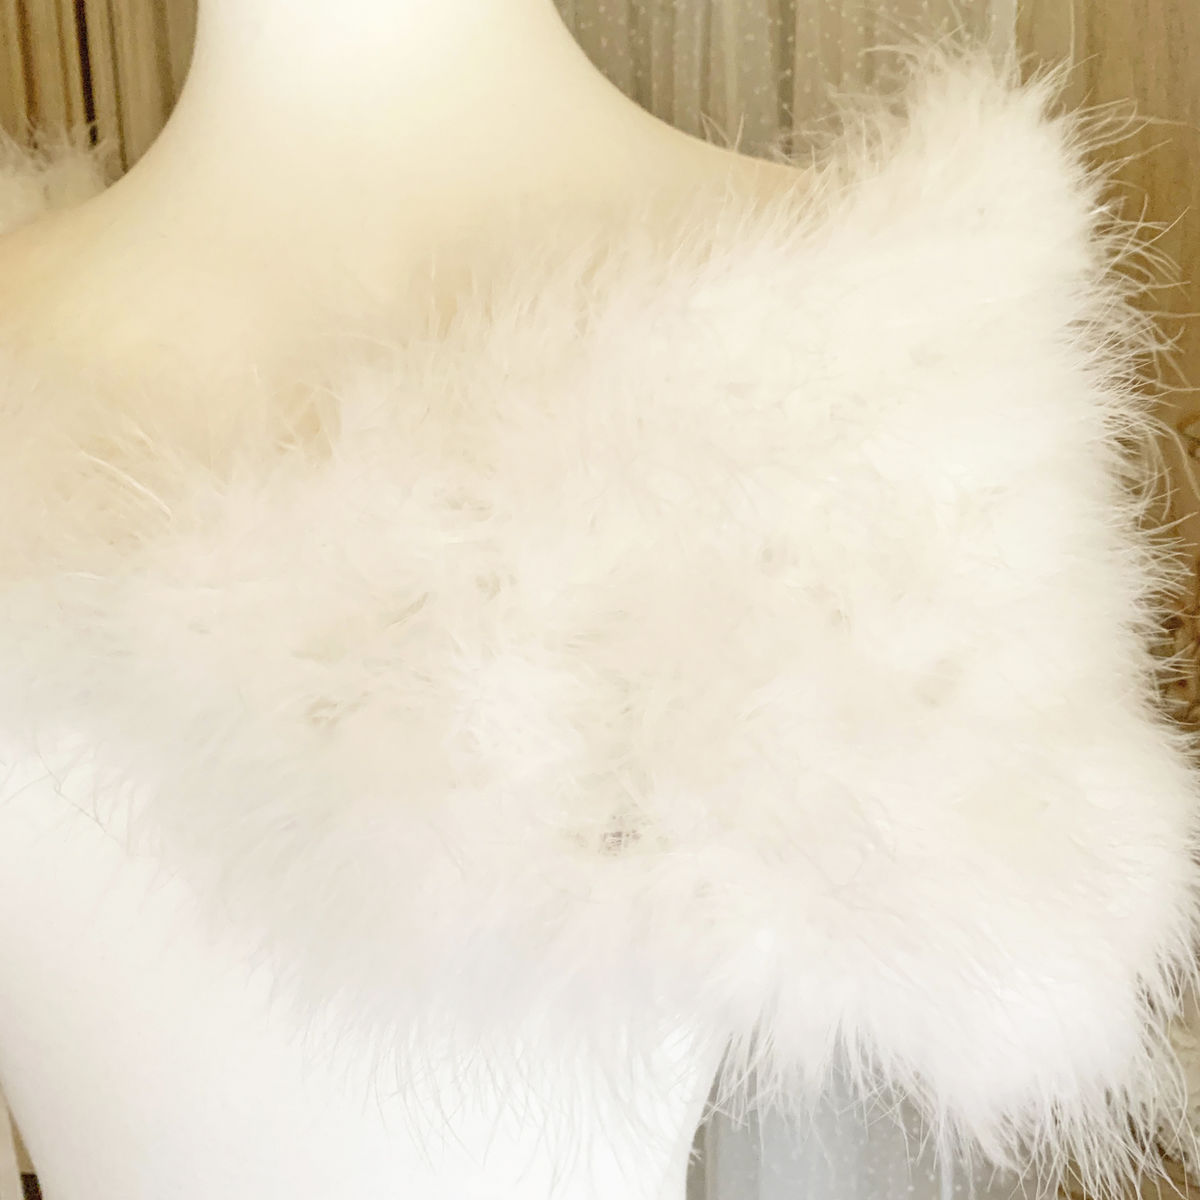 Ivory Feather Wrap - Marabou Feather - product images  of